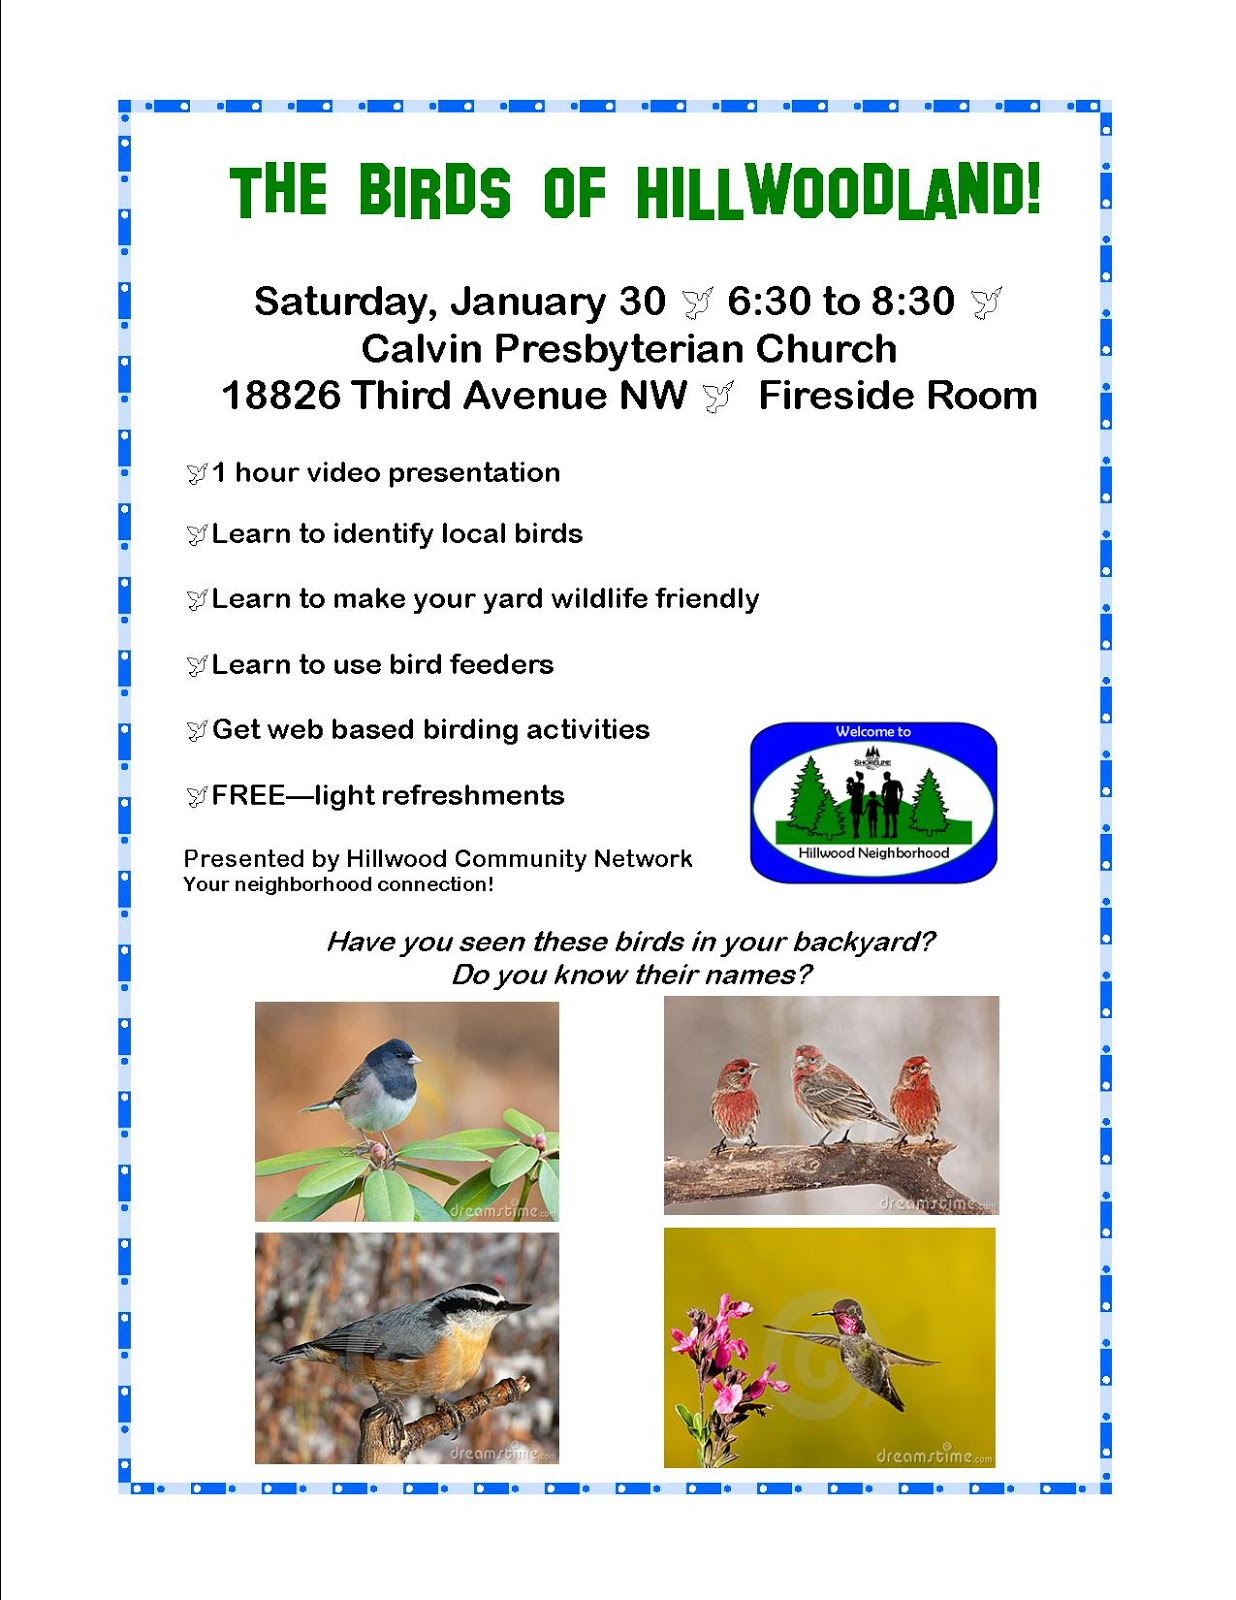 HIllwood Community Network Is Presenting A Class On Backyard Bird Watching.